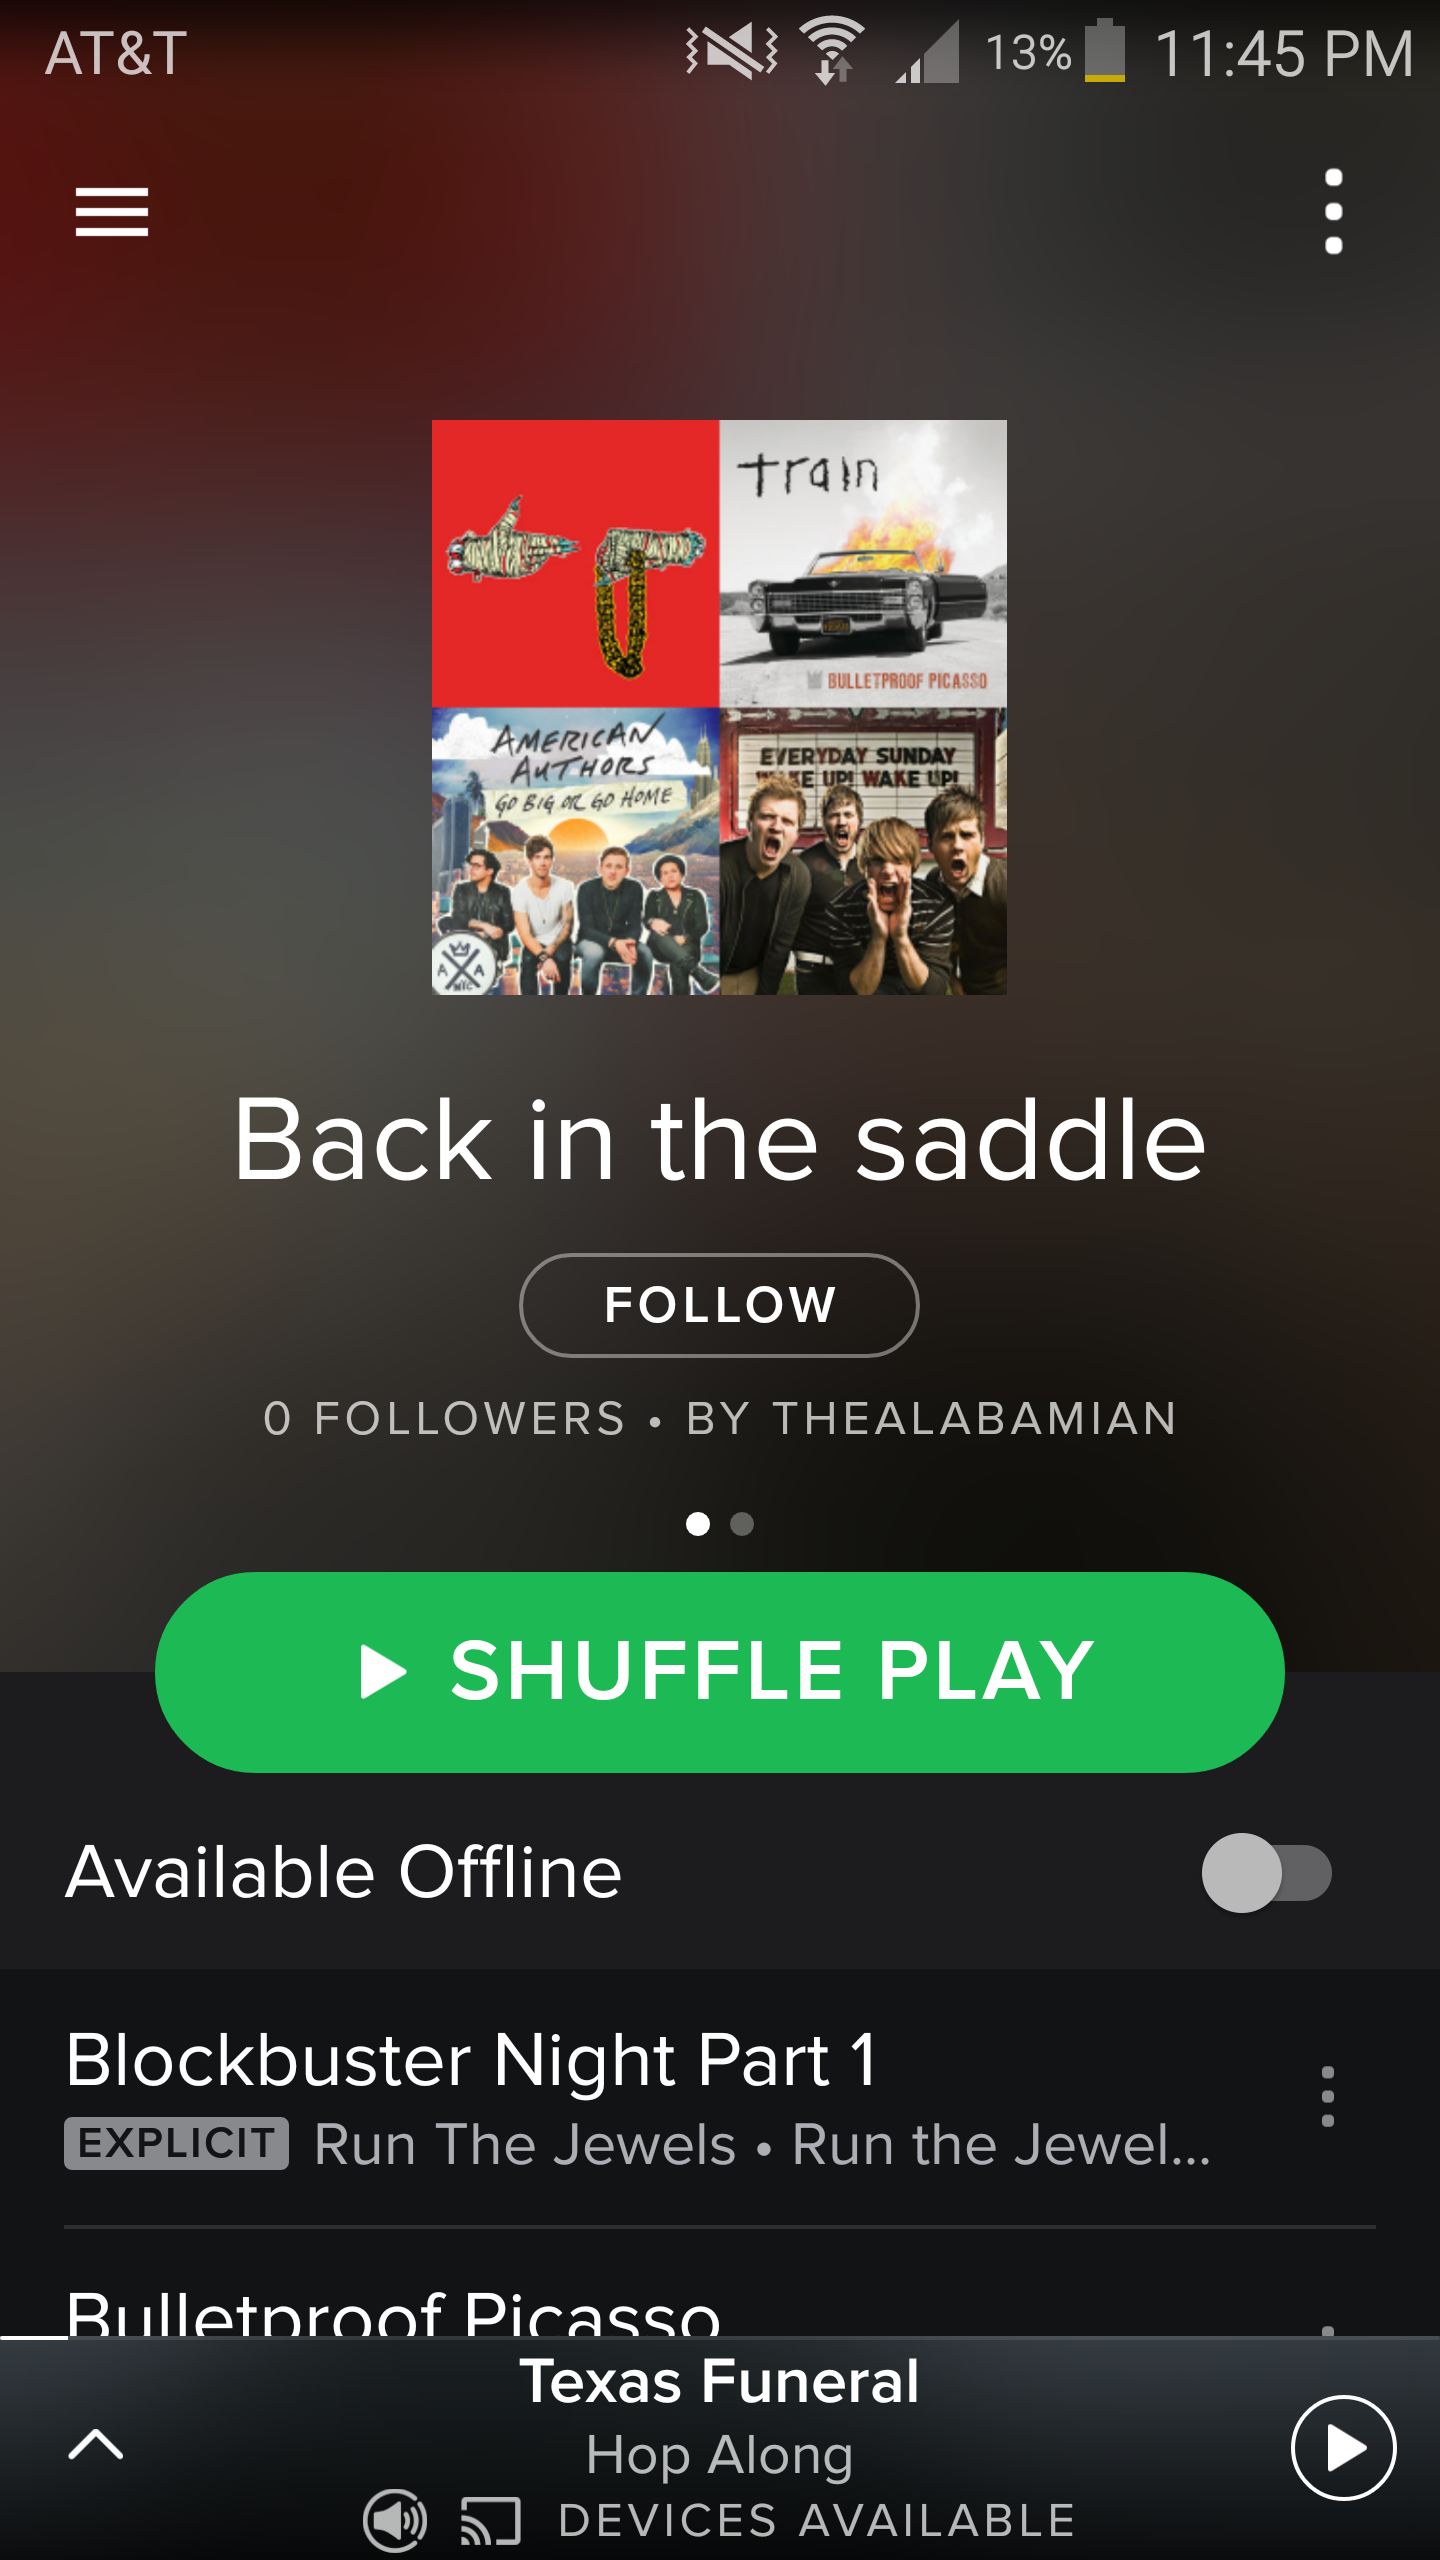 Spotify Playlist: Back in the Saddle